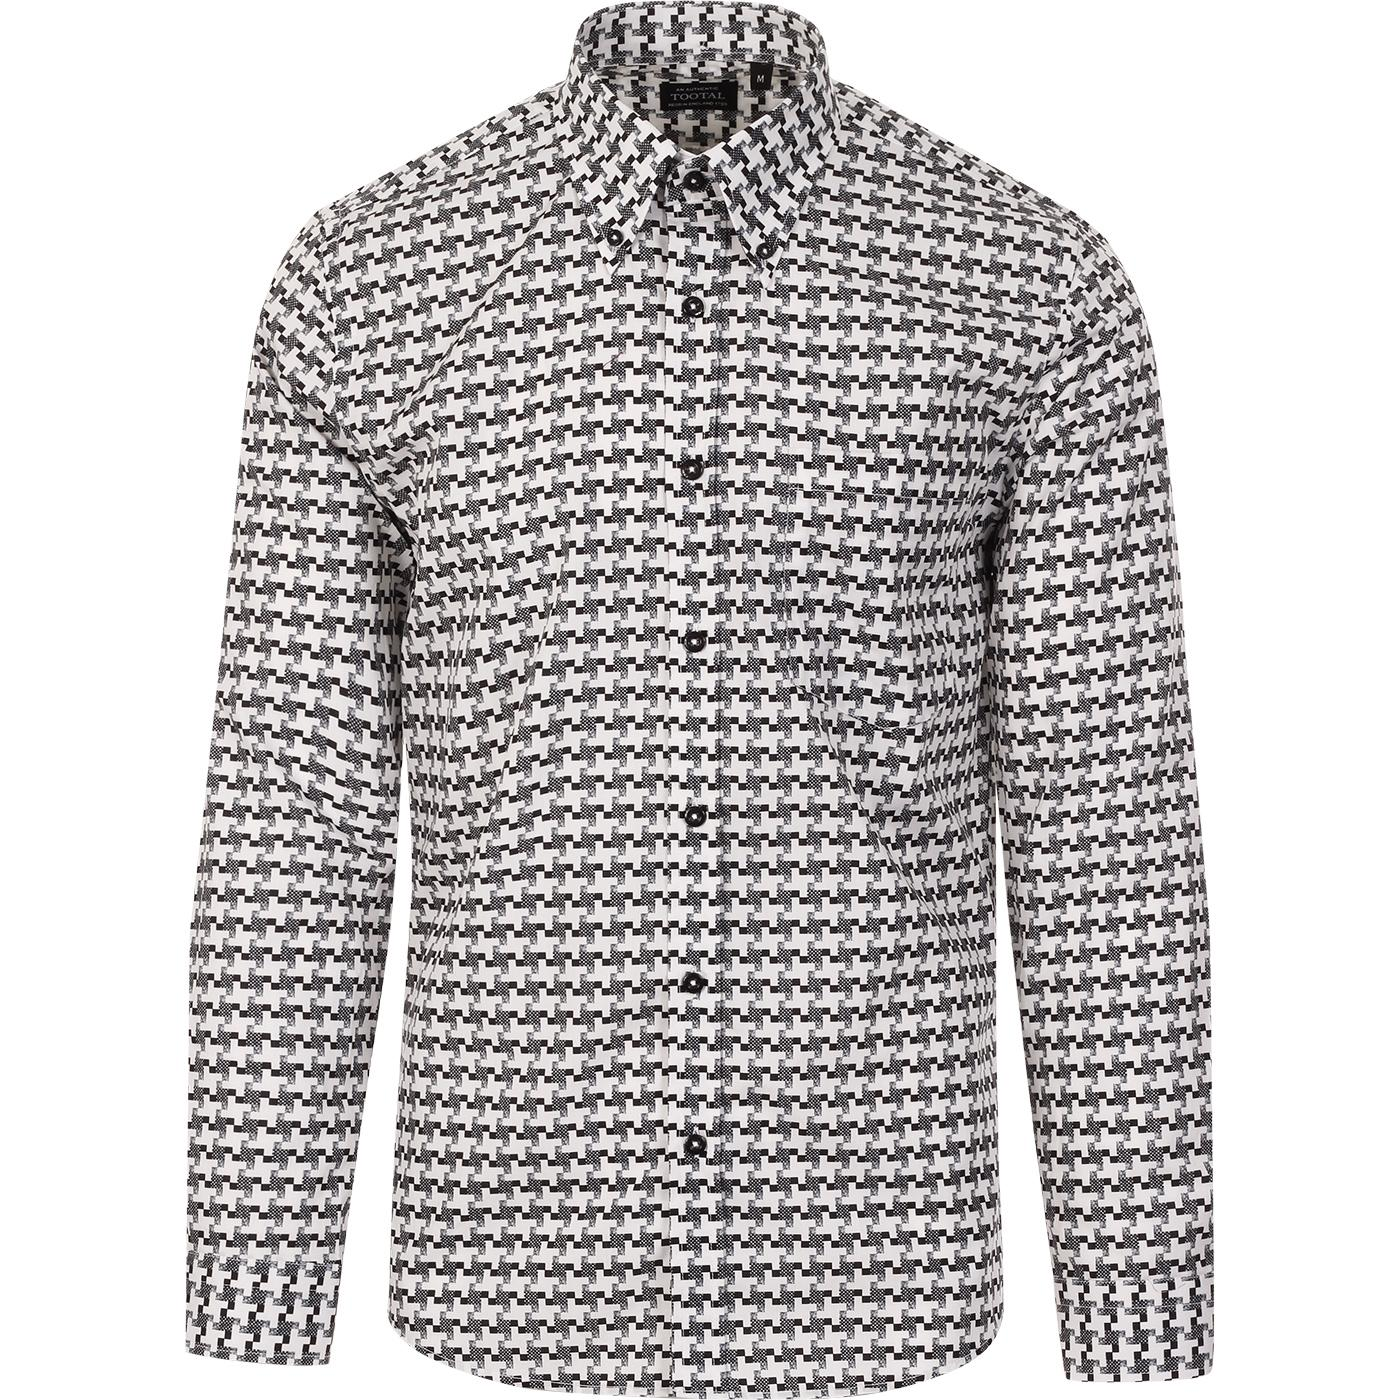 TOOTAL Houndstooth Textured Check Retro Mod Shirt